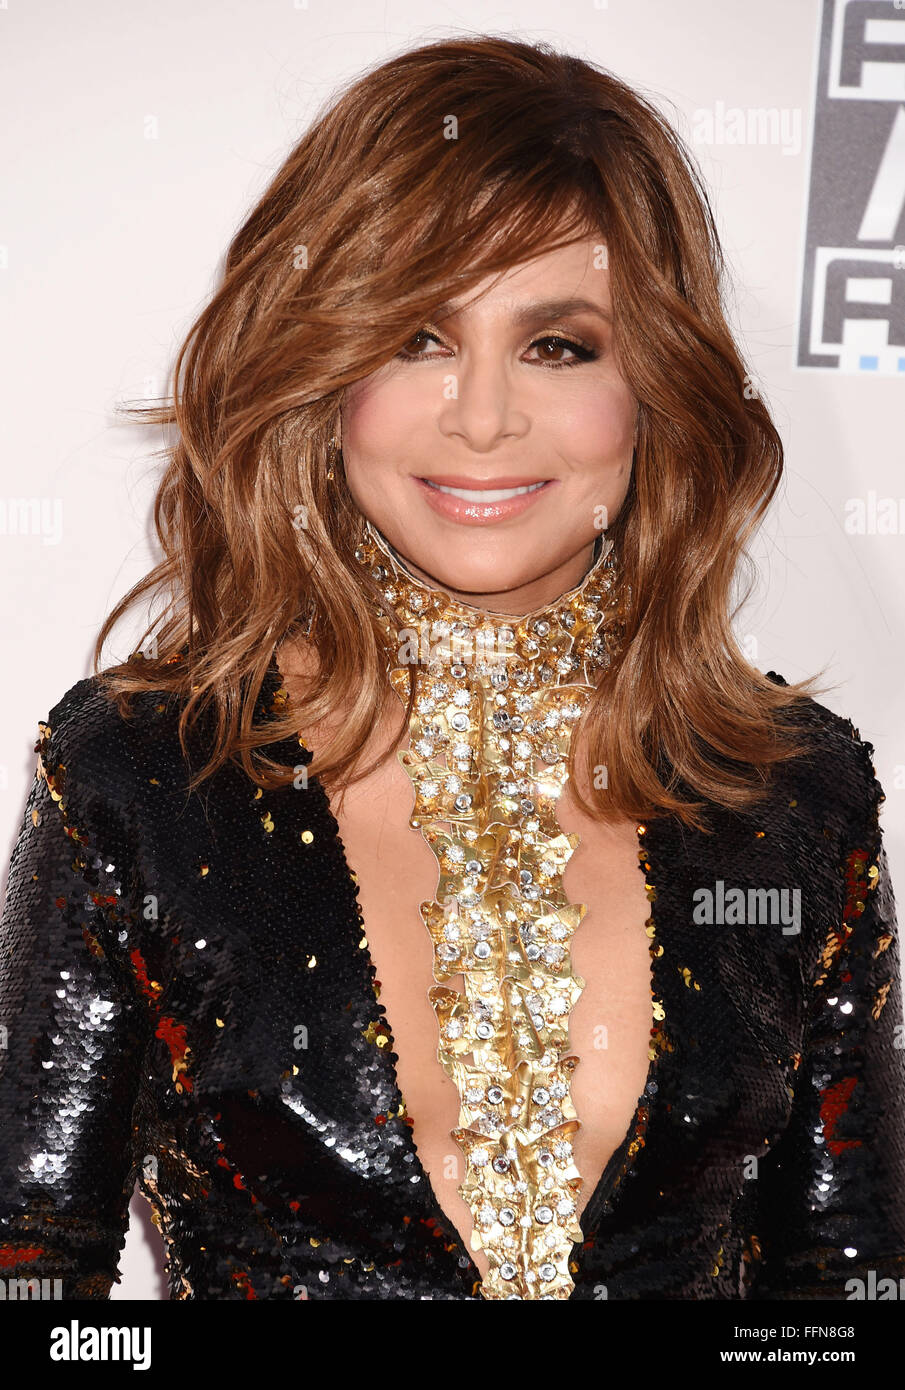 Singer/dancer Paula Abdul arrives at the 2015 American Music Awards at Microsoft Theater on November 22, 2015 in - Stock Image